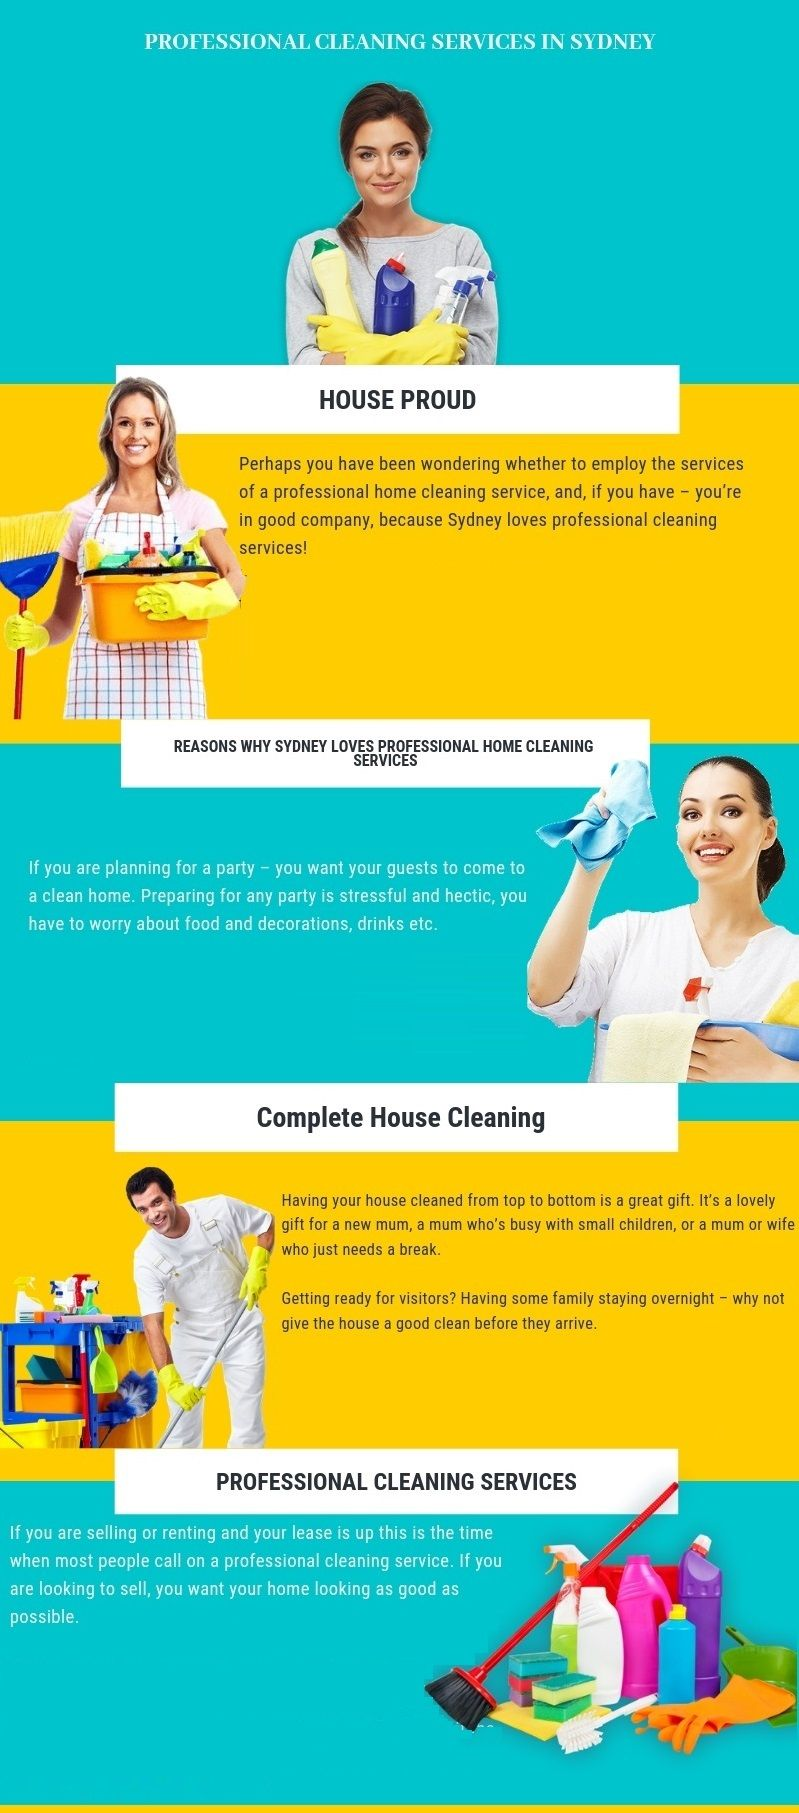 At House Proud cleaning services we provide wide range of